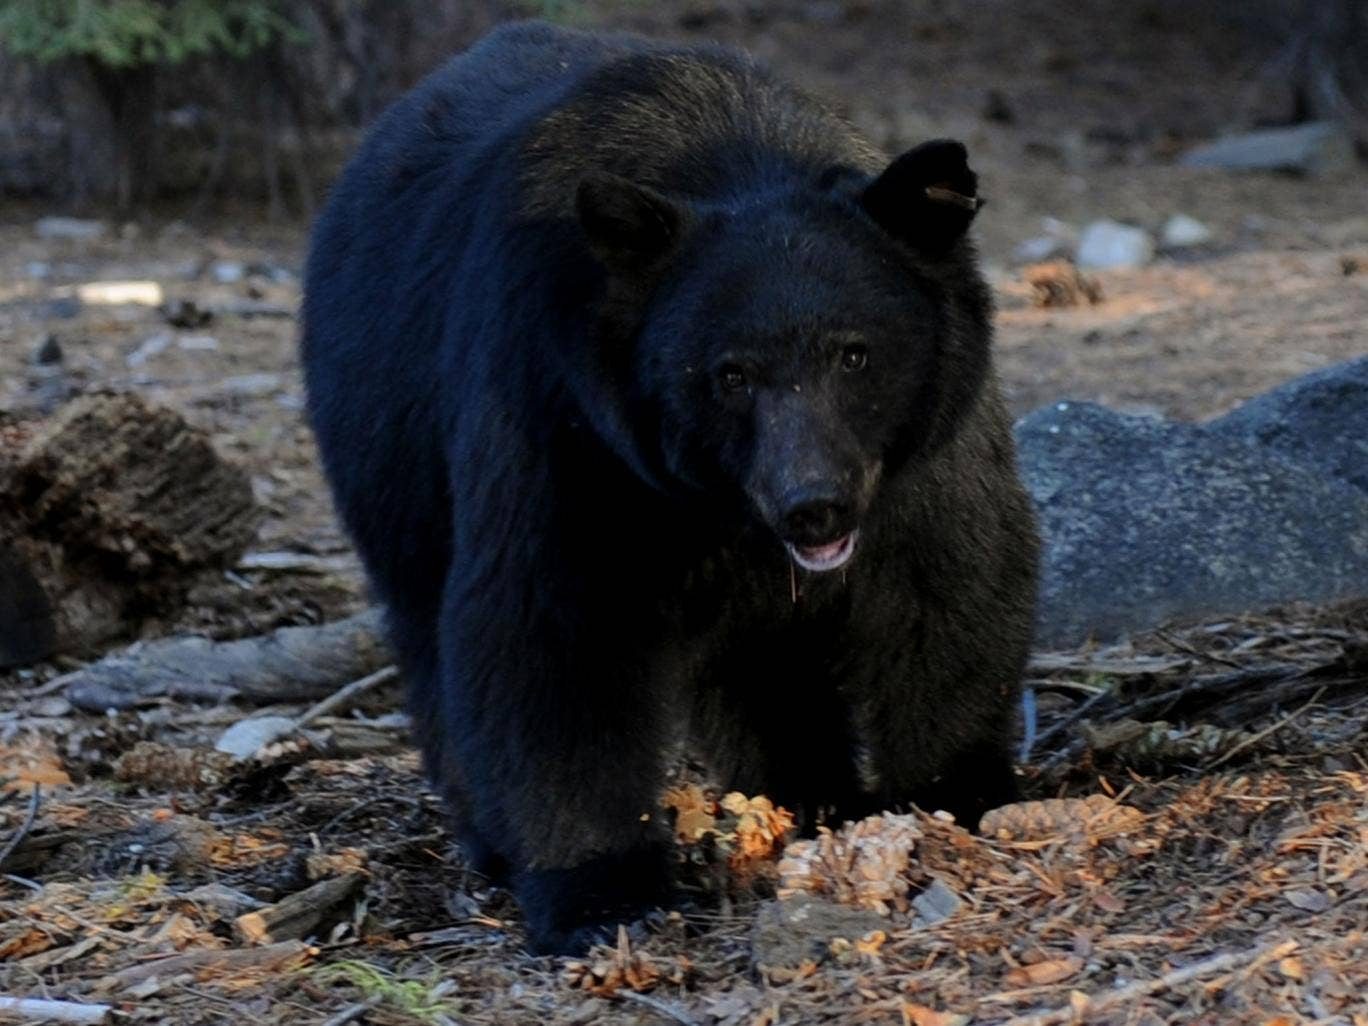 A black bear like the one that wandered into an Irish bar in Colorado